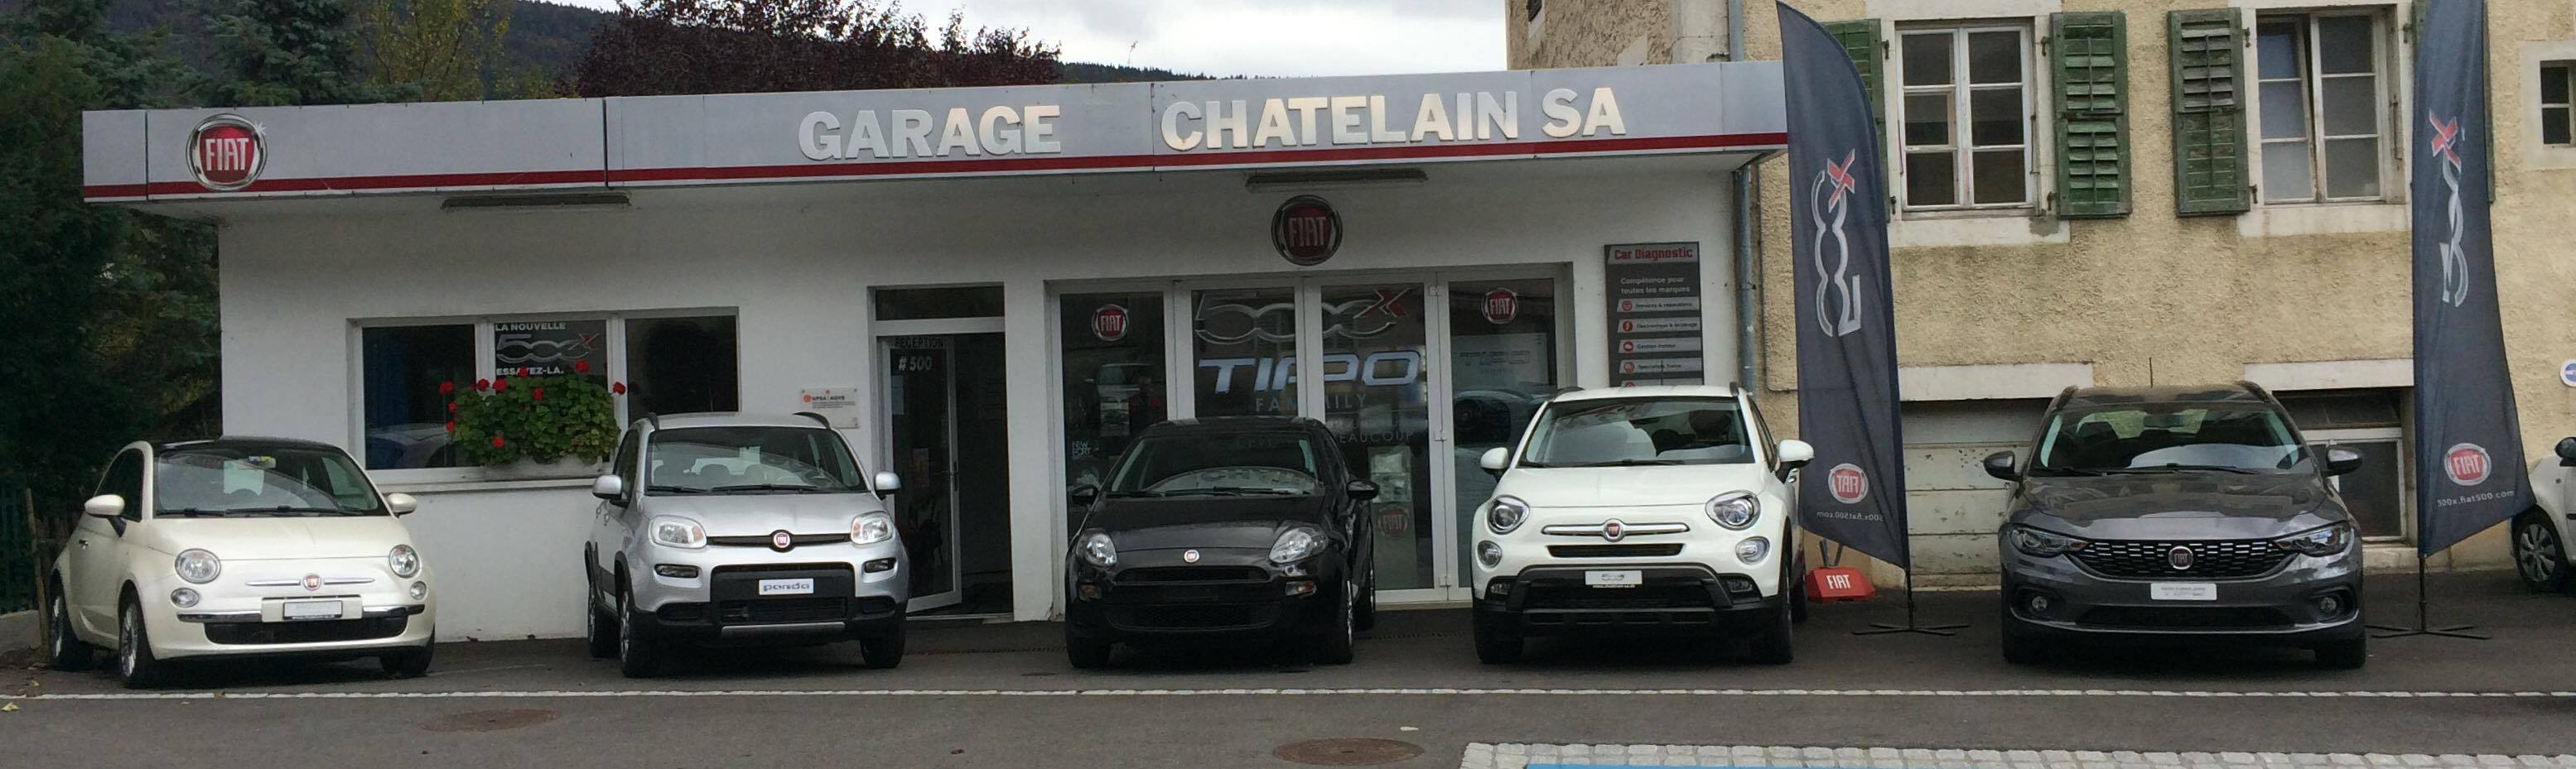 V hicules occasions garage chatelain sa for Garage occasion reprise